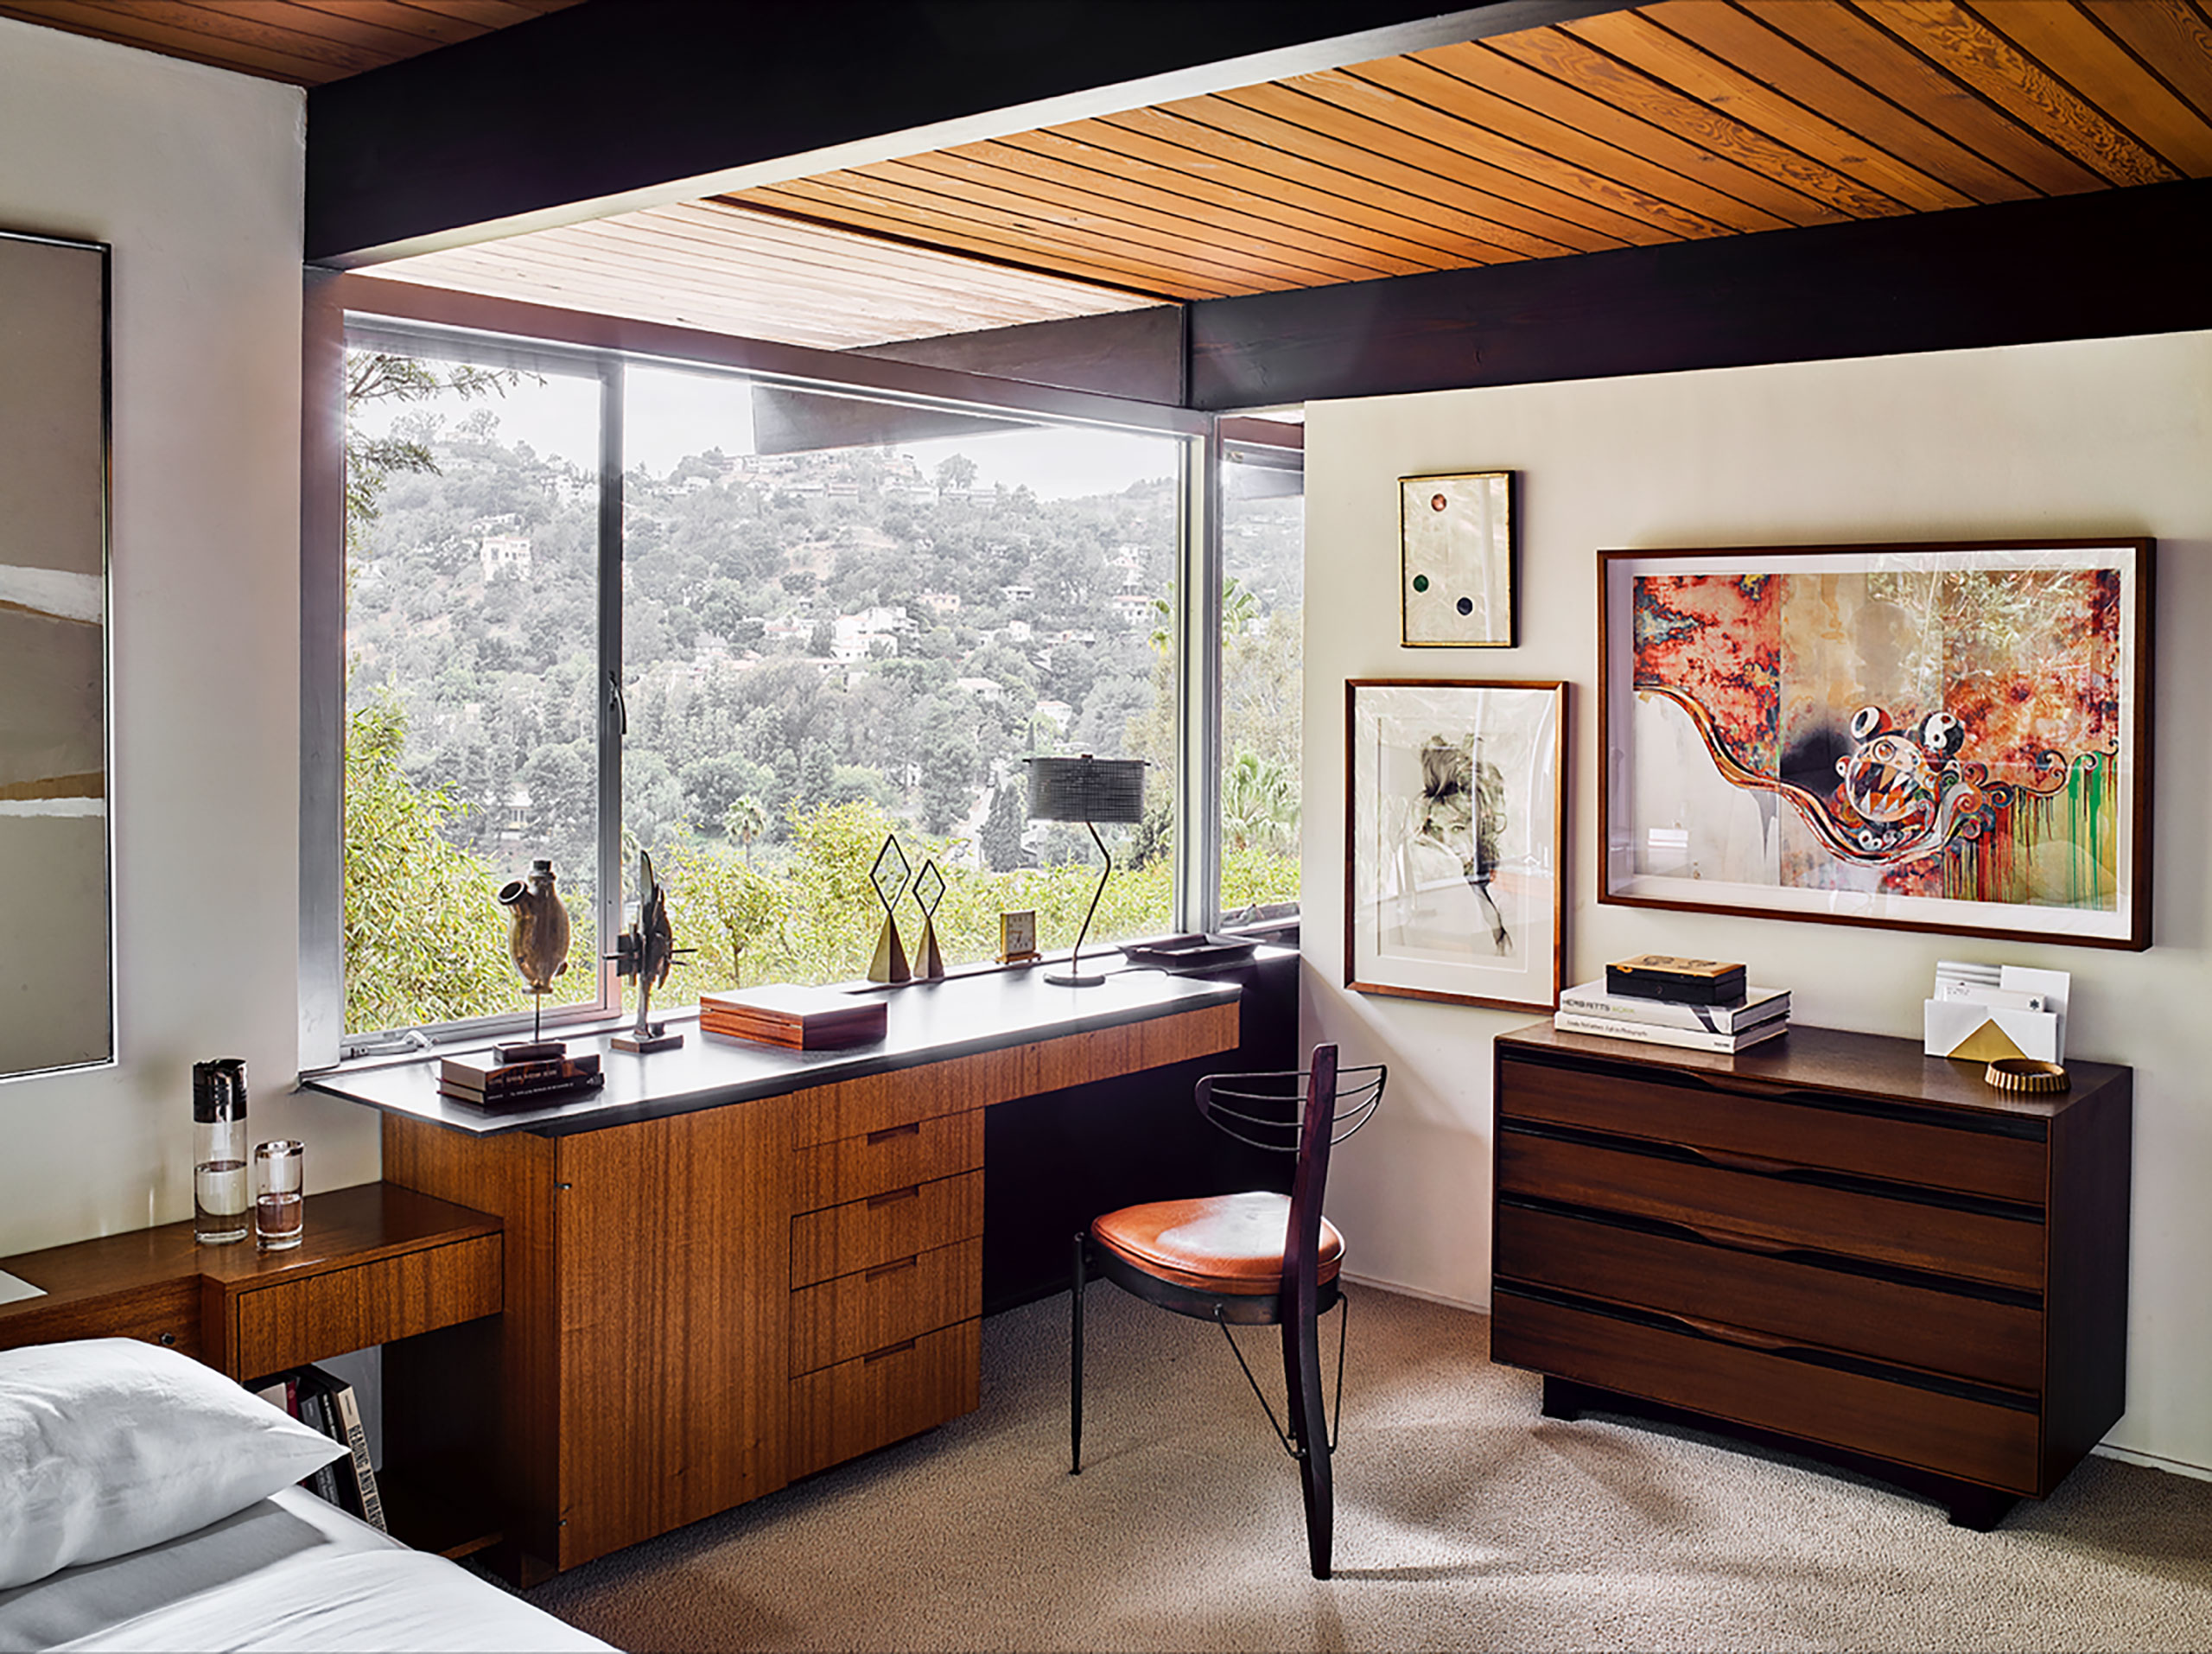 Photography by Douglas Friedman. Featured: Desk by Richard Neutra; three-legged chair by Pedro Useche.